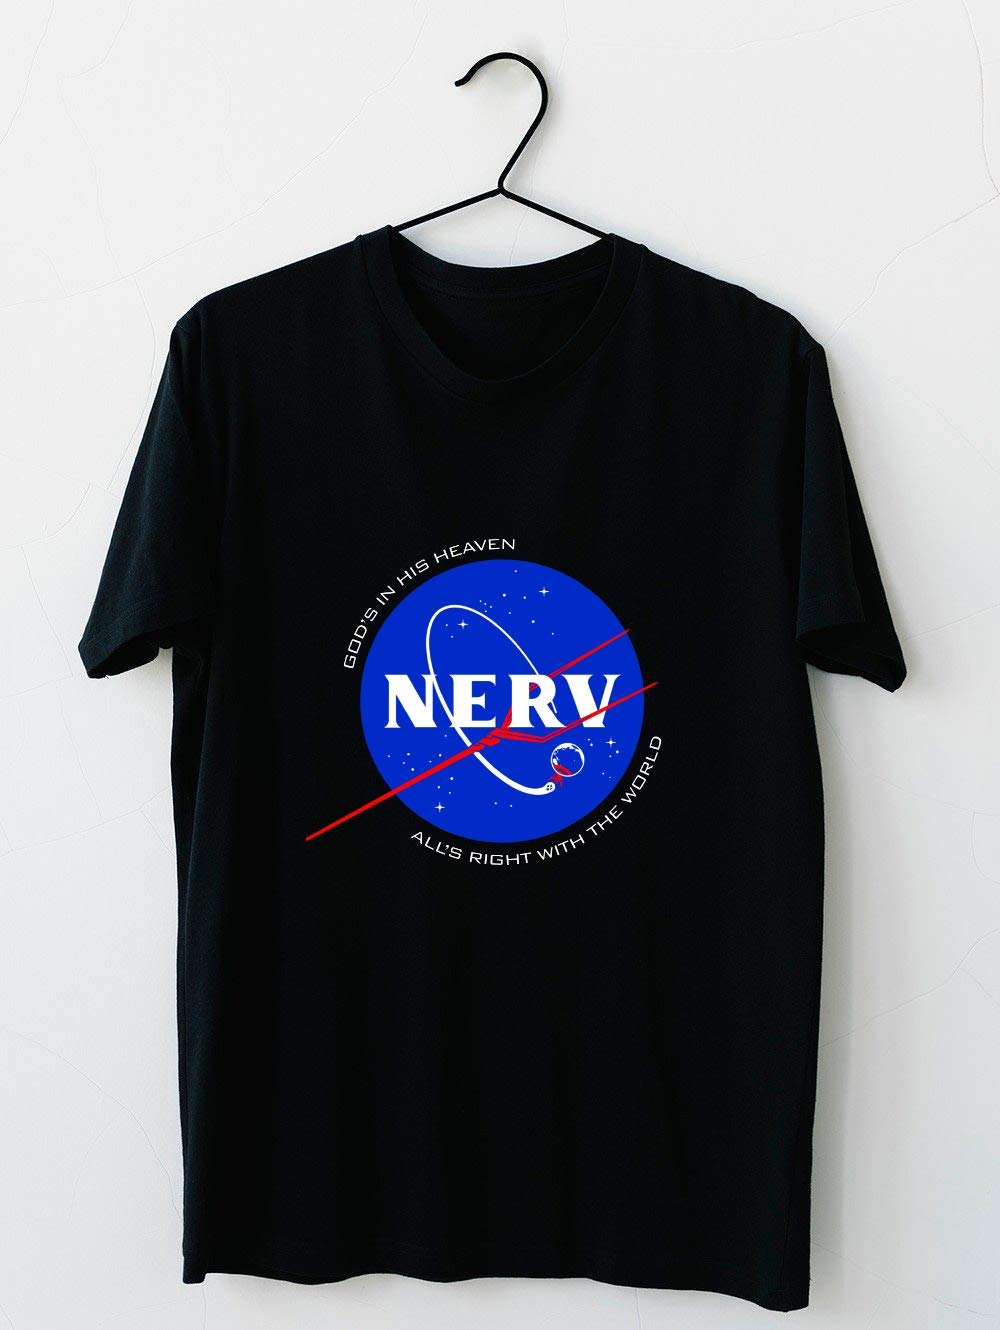 For The Bene Of Some 11 T Shirt For Unisex